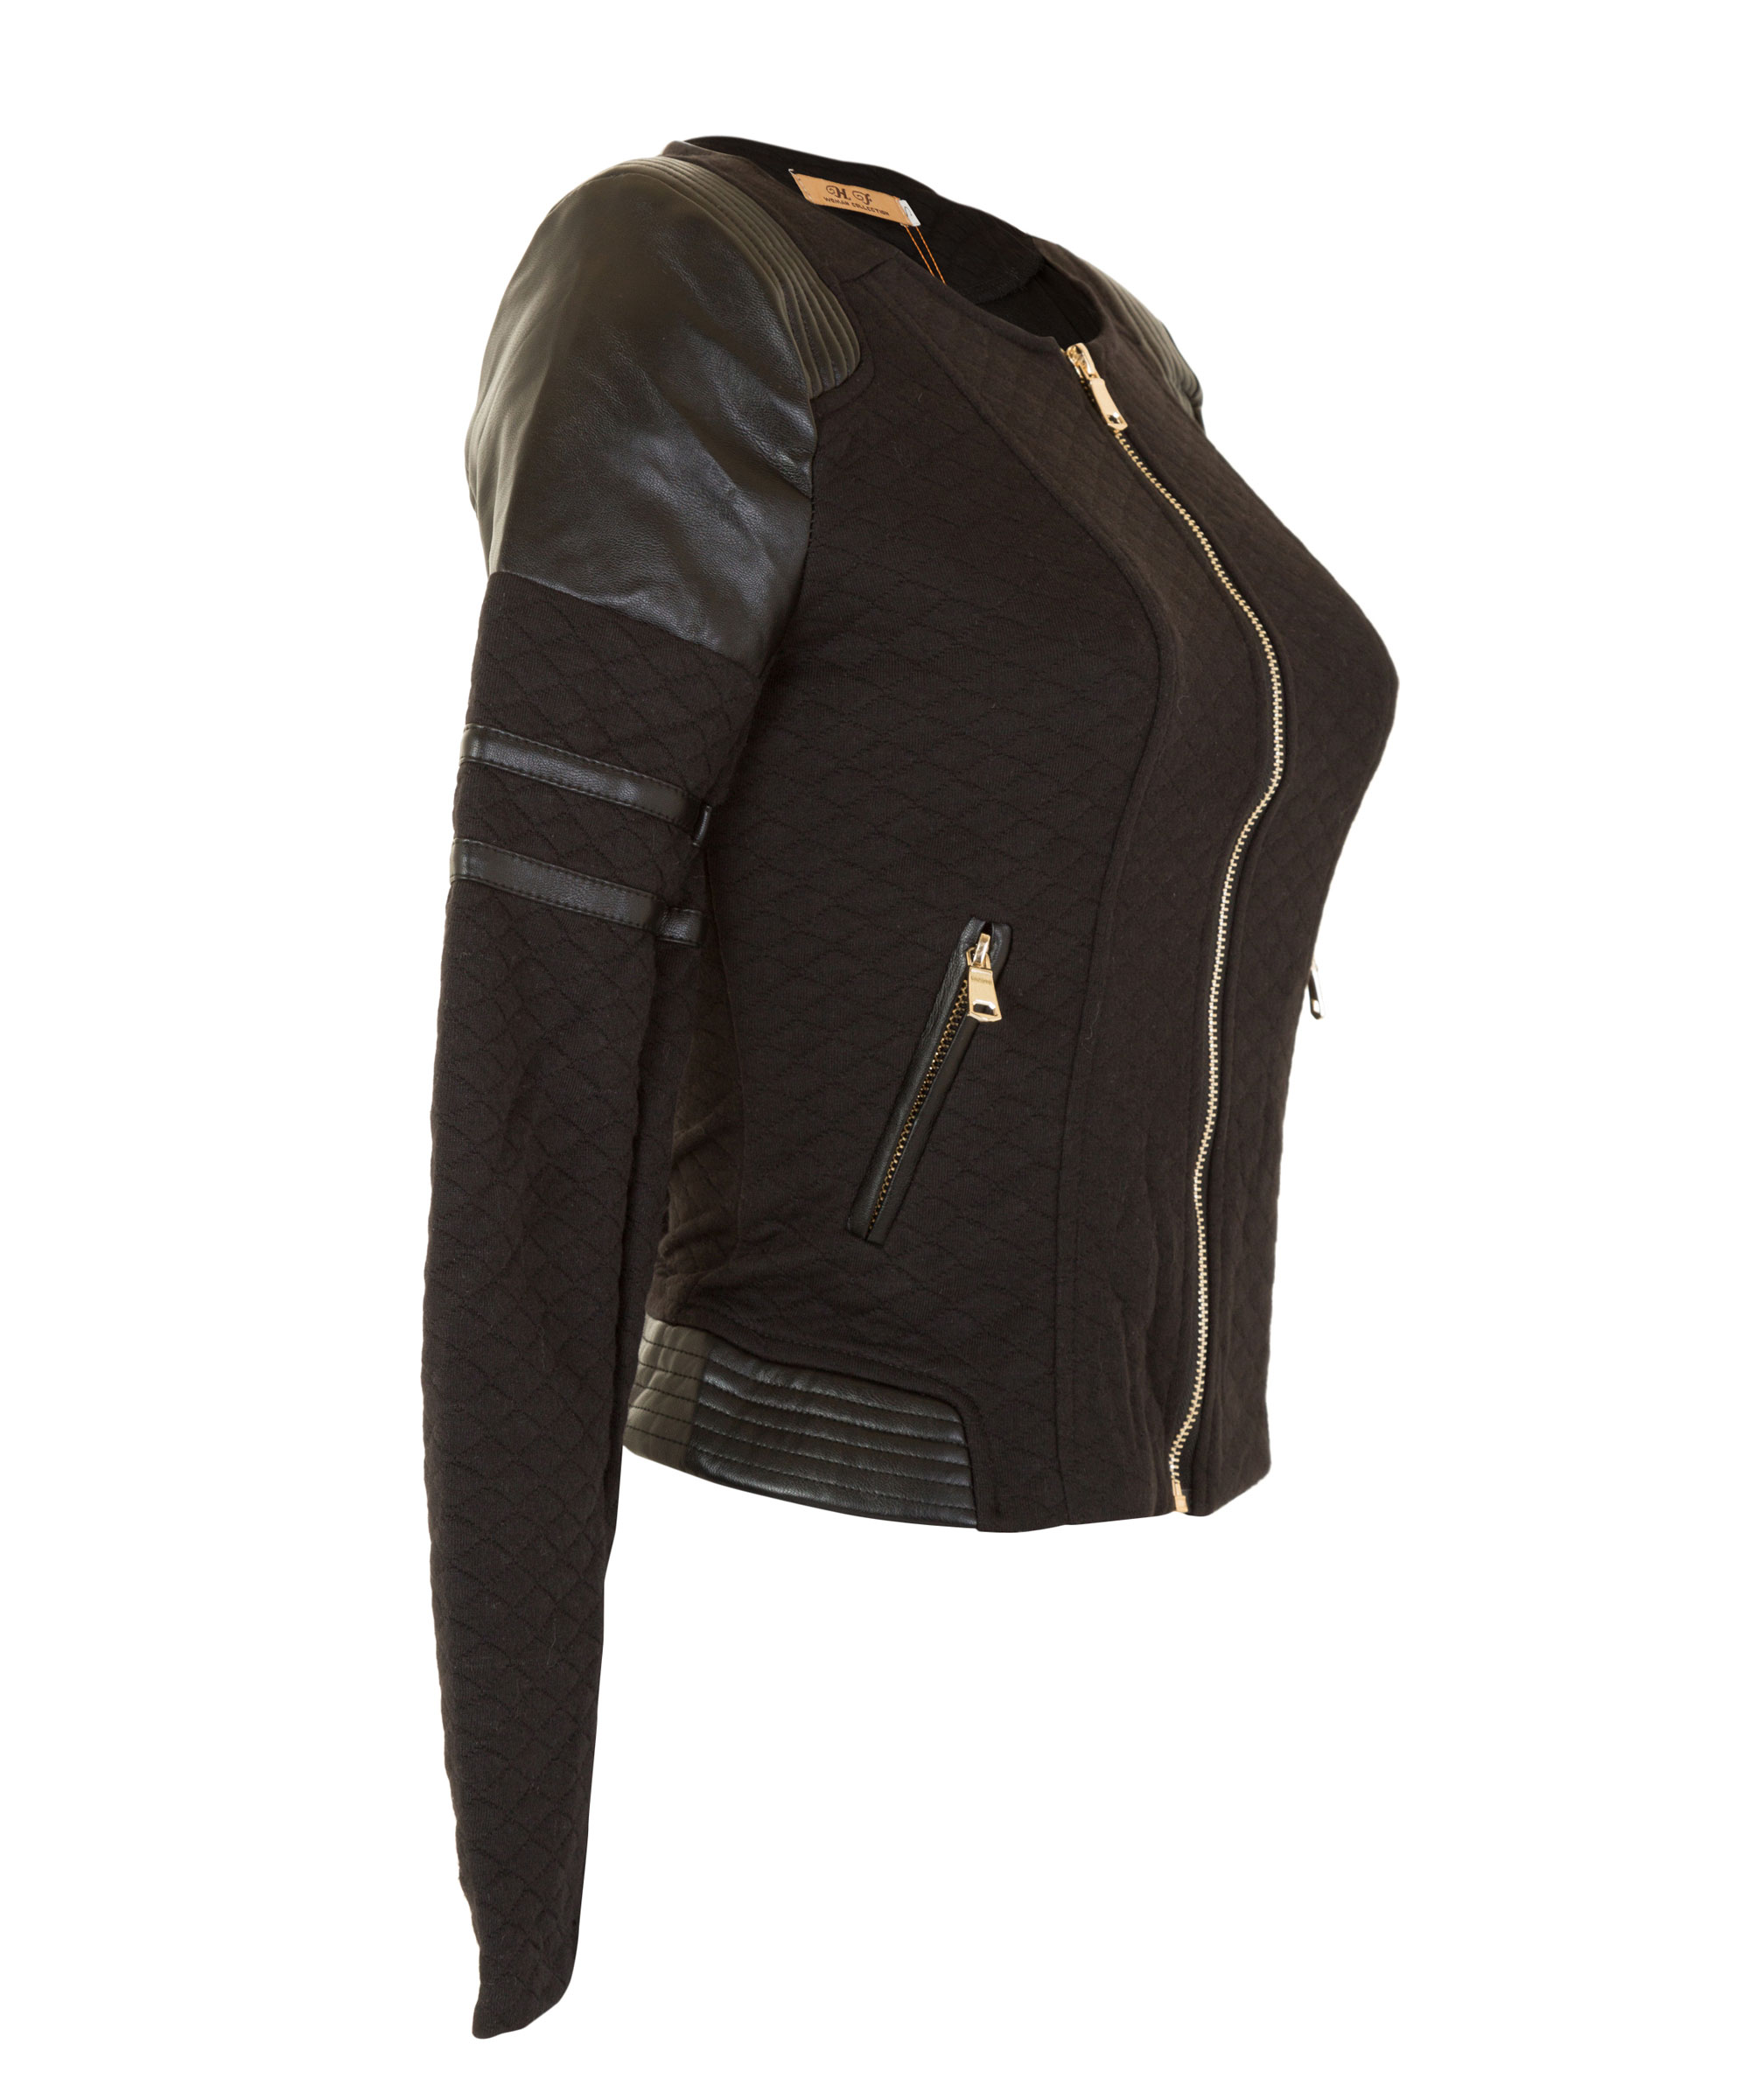 Collar Motorcycle Leather Coat Boys Leather Jacket Size for Years sisk-profi.ga Fashion Diagonal Zipper Jacket Pu Leather Side Pockets Outerwear Jacket for Spring Autumn. by sisk-profi.ga $ $ 39 99 Prime. FREE Shipping on eligible orders. Some sizes/colors are Prime eligible. out of 5 stars